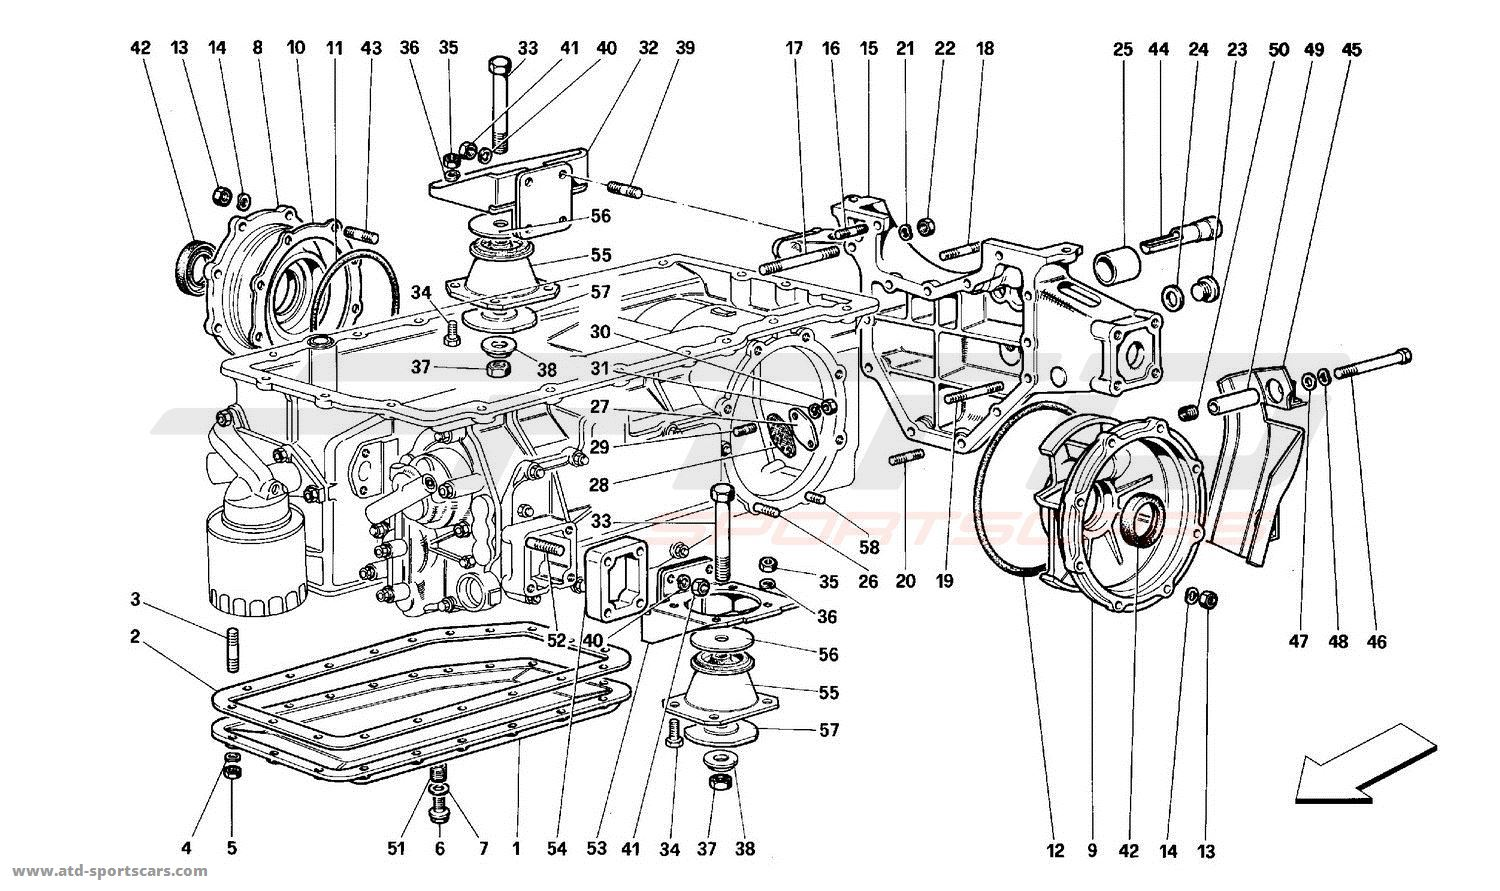 Ferrari 512TR GEARBOX - MOUNTING AND COVERS